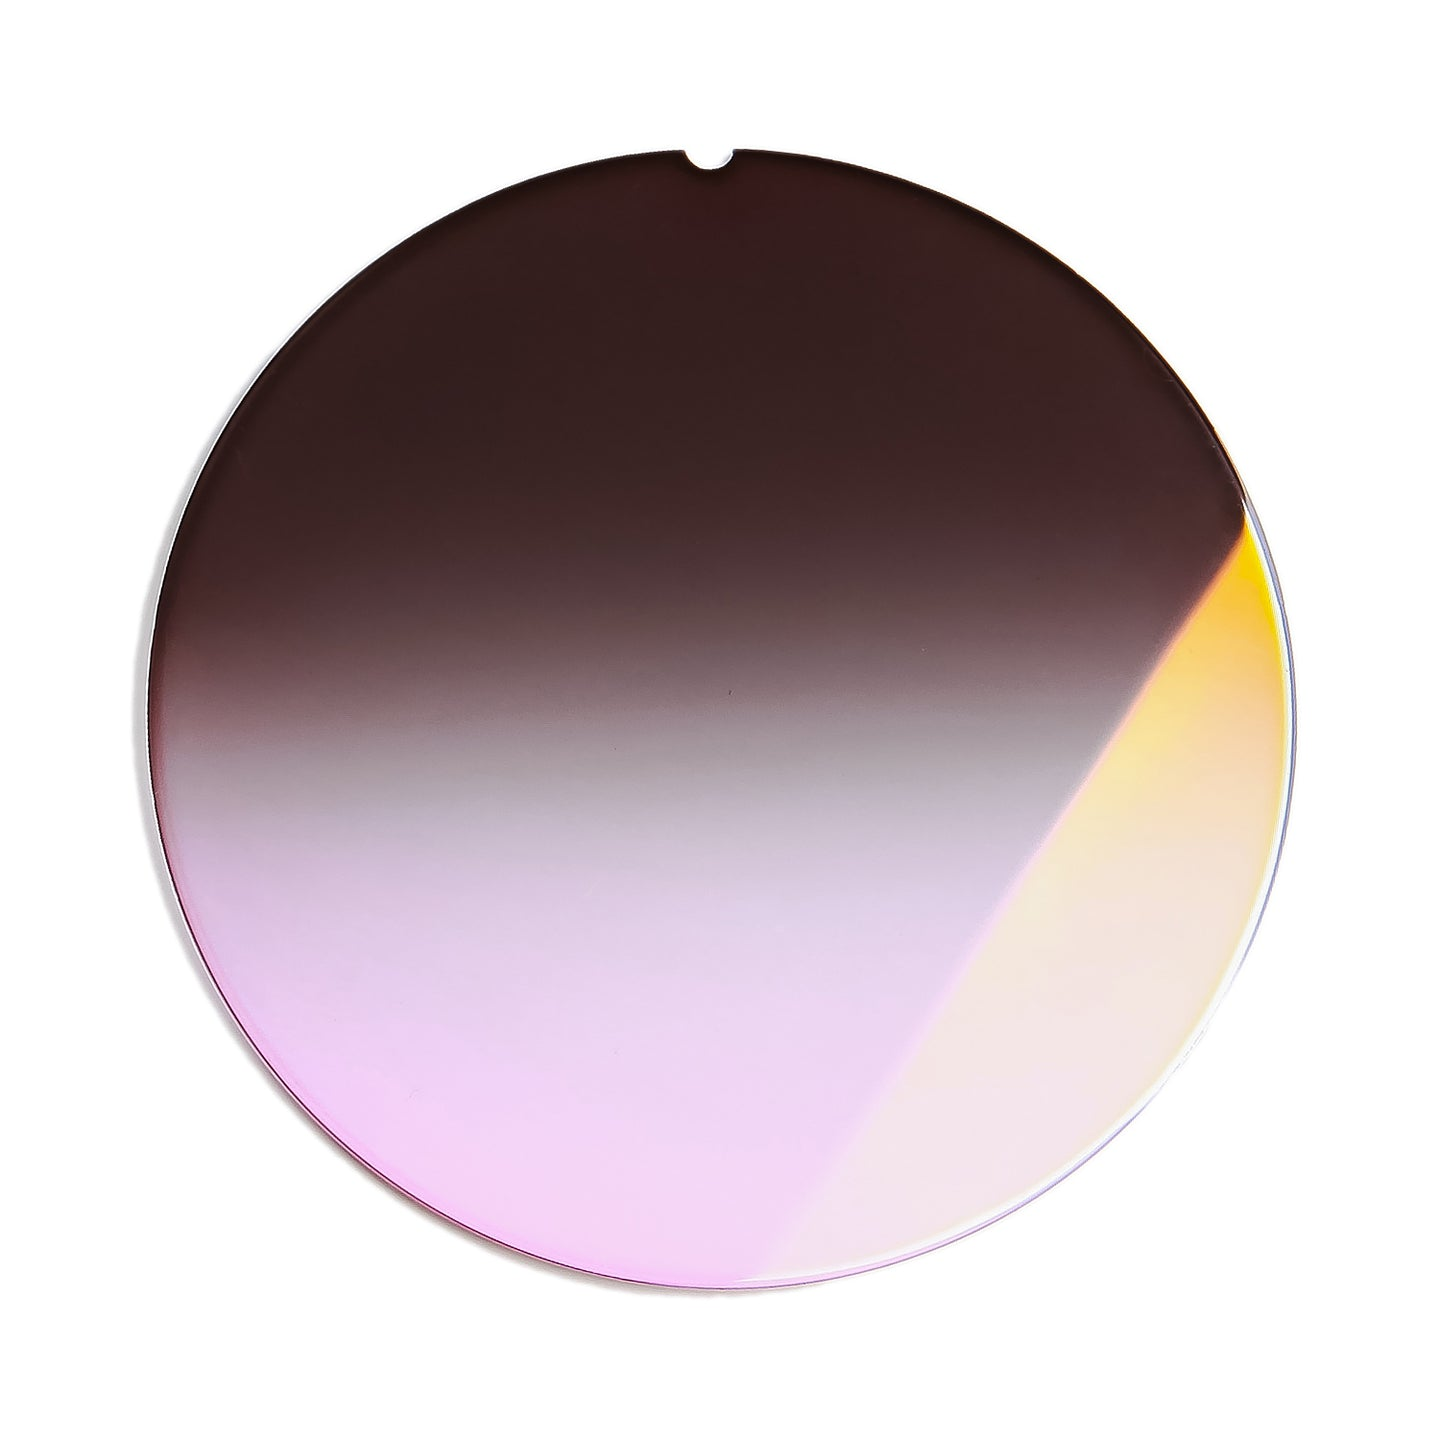 208 - Black Pink Gradient Flat Flash Gold Lens